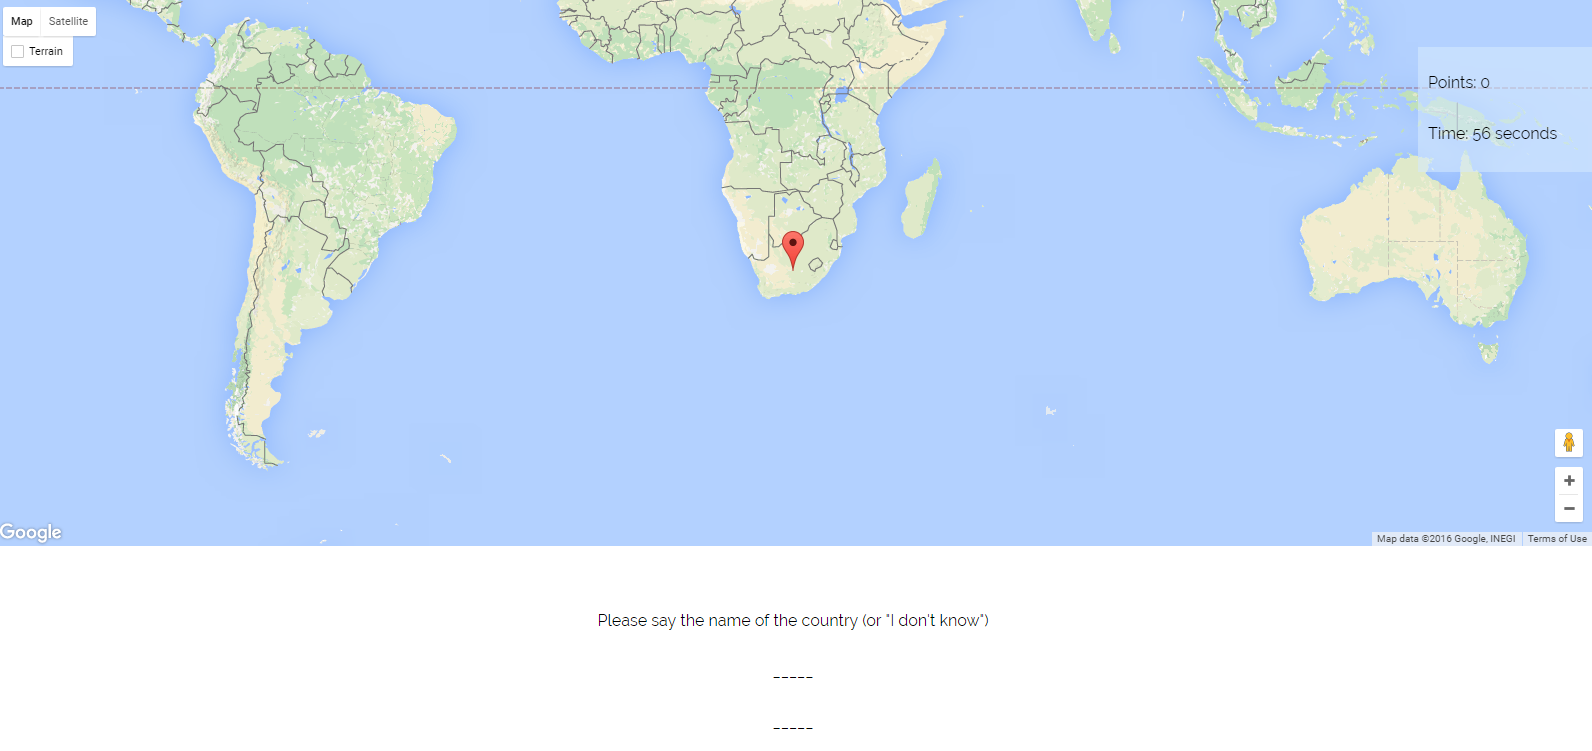 Free technology for teachers geoquiz a talking map quiz geoquiz could be a good game for students to play to review their knowledge of the locations of countries around the world the option to speak a name gumiabroncs Image collections